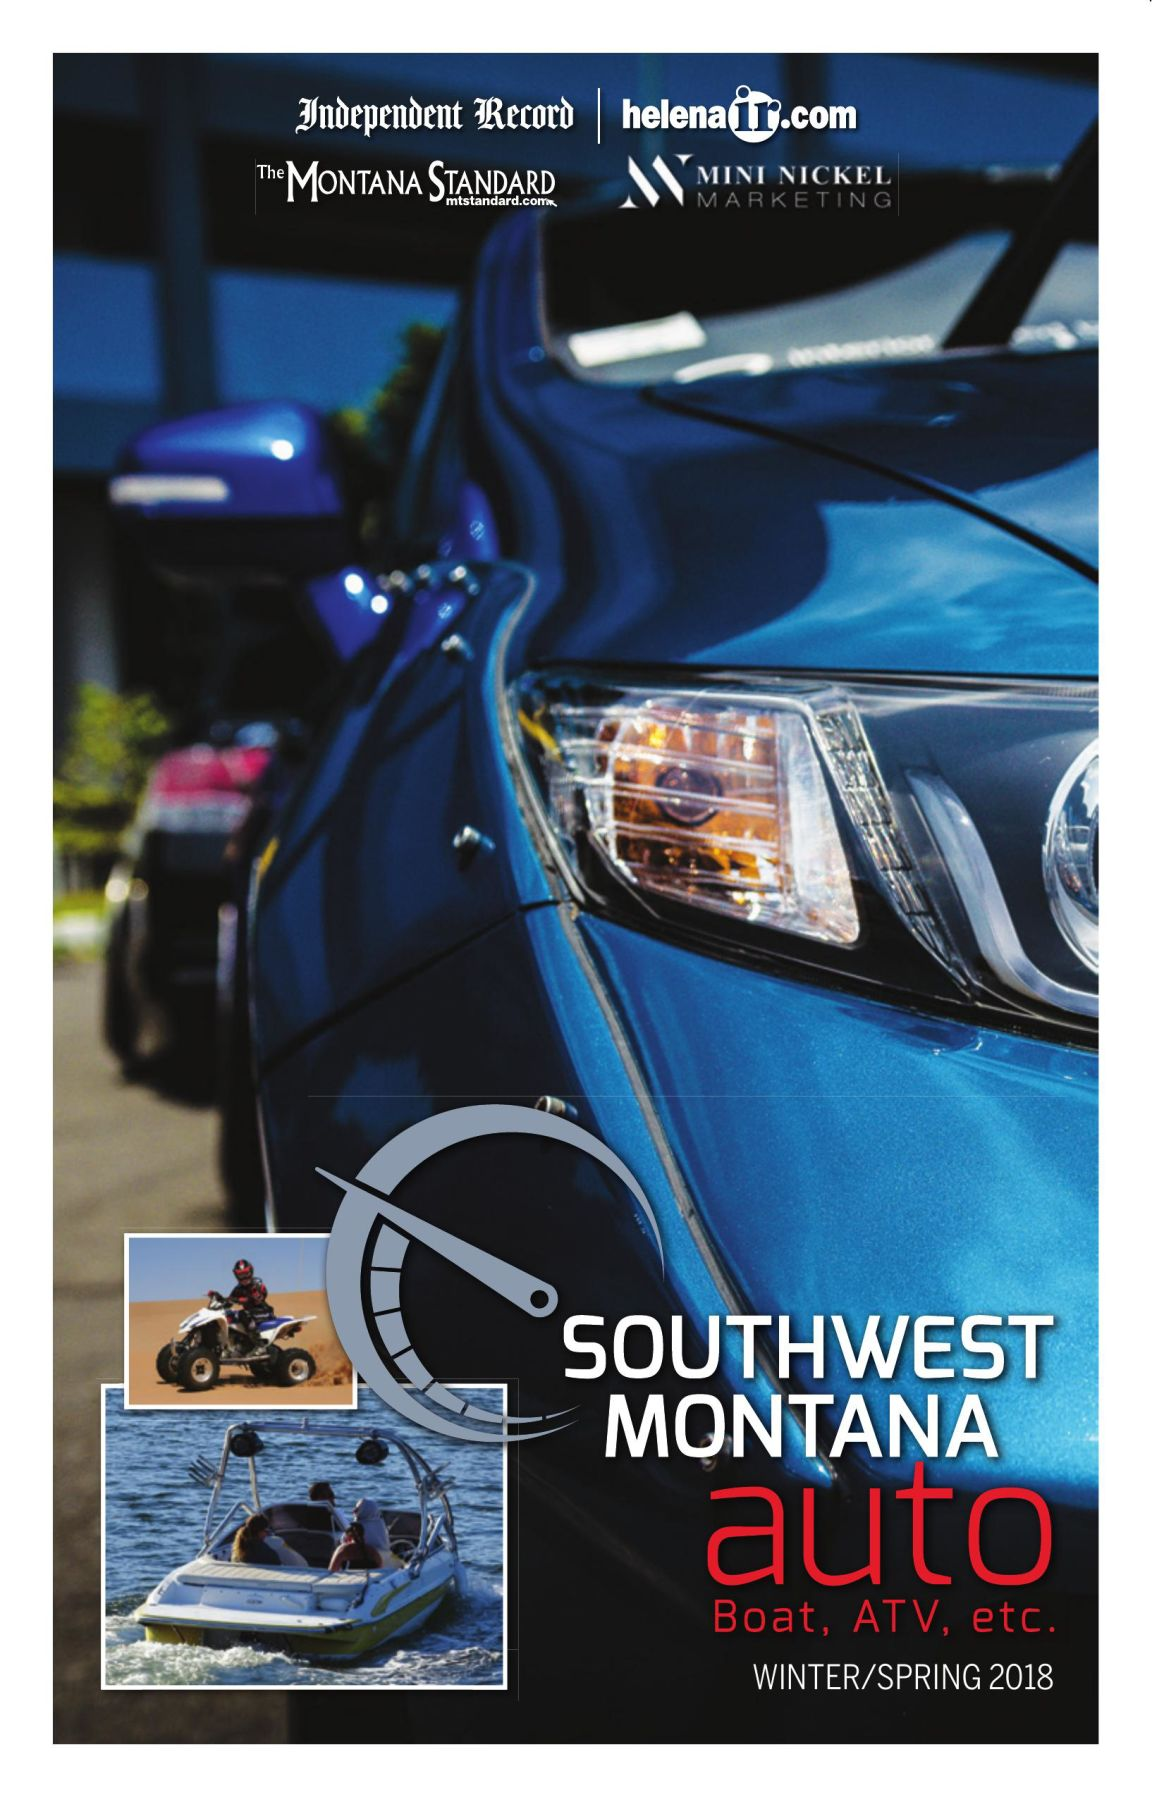 Southwest Montana Auto Guide - Winter/Spring 2018